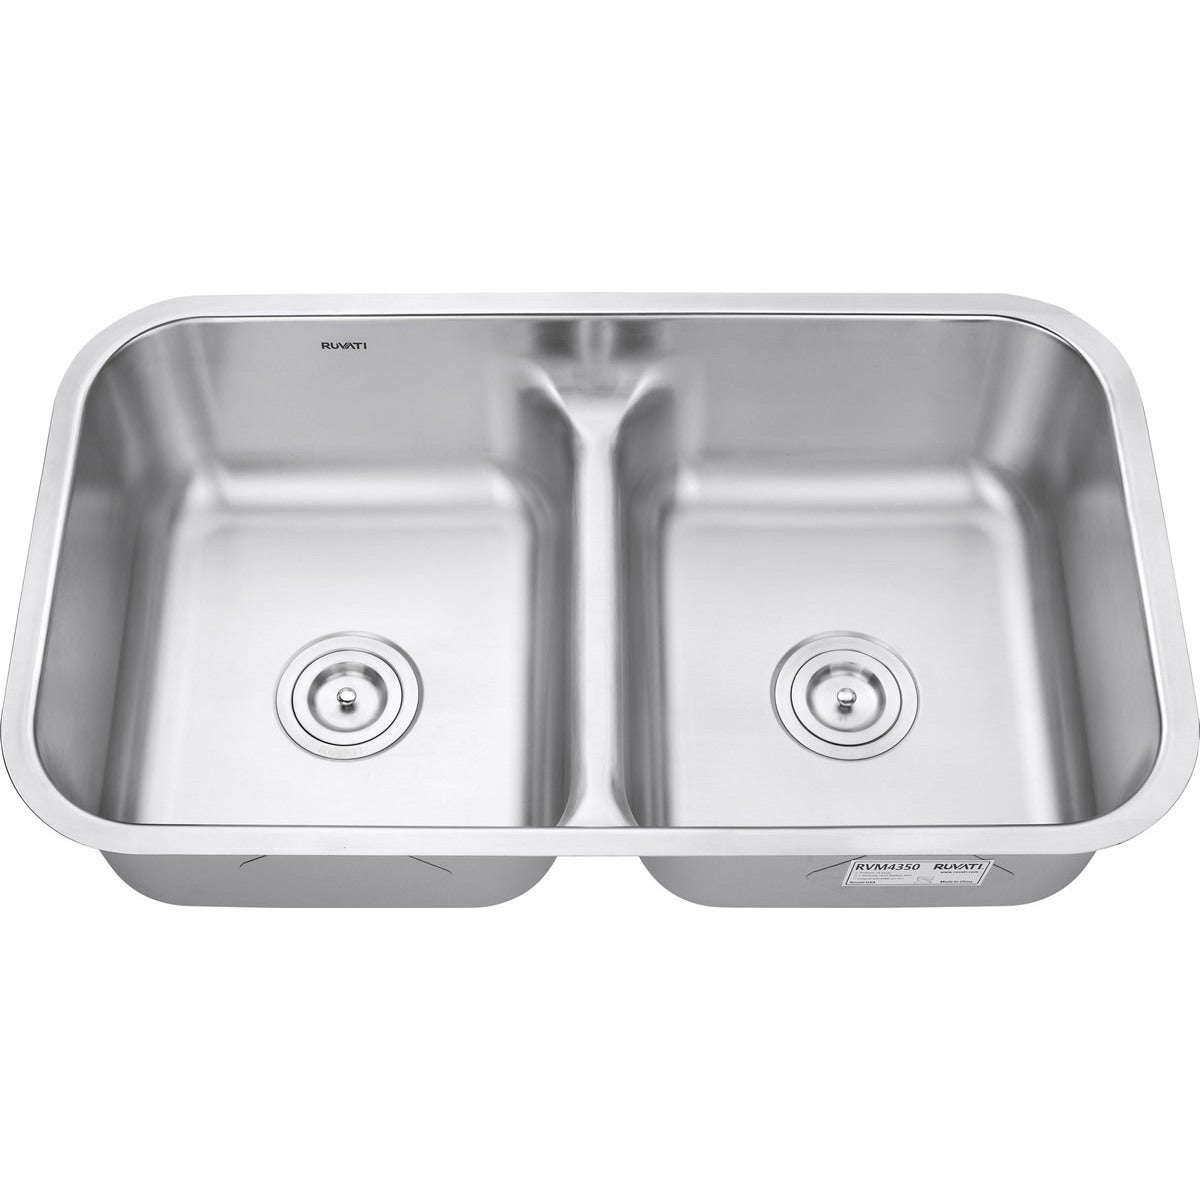 Kitchen Sinks Double Ruvati rvm43 low divide 5050 double bowl undermount 16 gauge ruvati rvm43 low divide 5050 double bowl undermount 16 gauge stainless steel 32 inch kitchen sink free shipping today overstock 16836330 workwithnaturefo